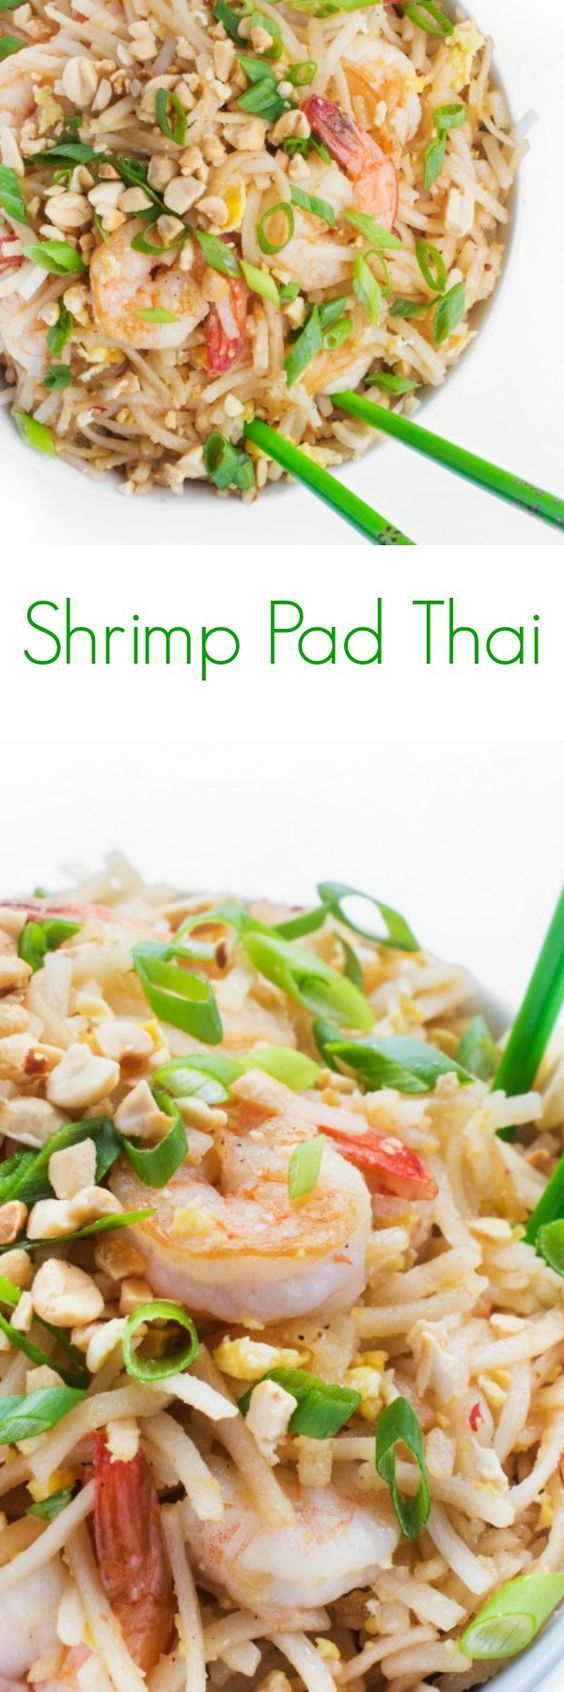 ... , this Shrimp Pad Thai is a lighter version of the take-out classic